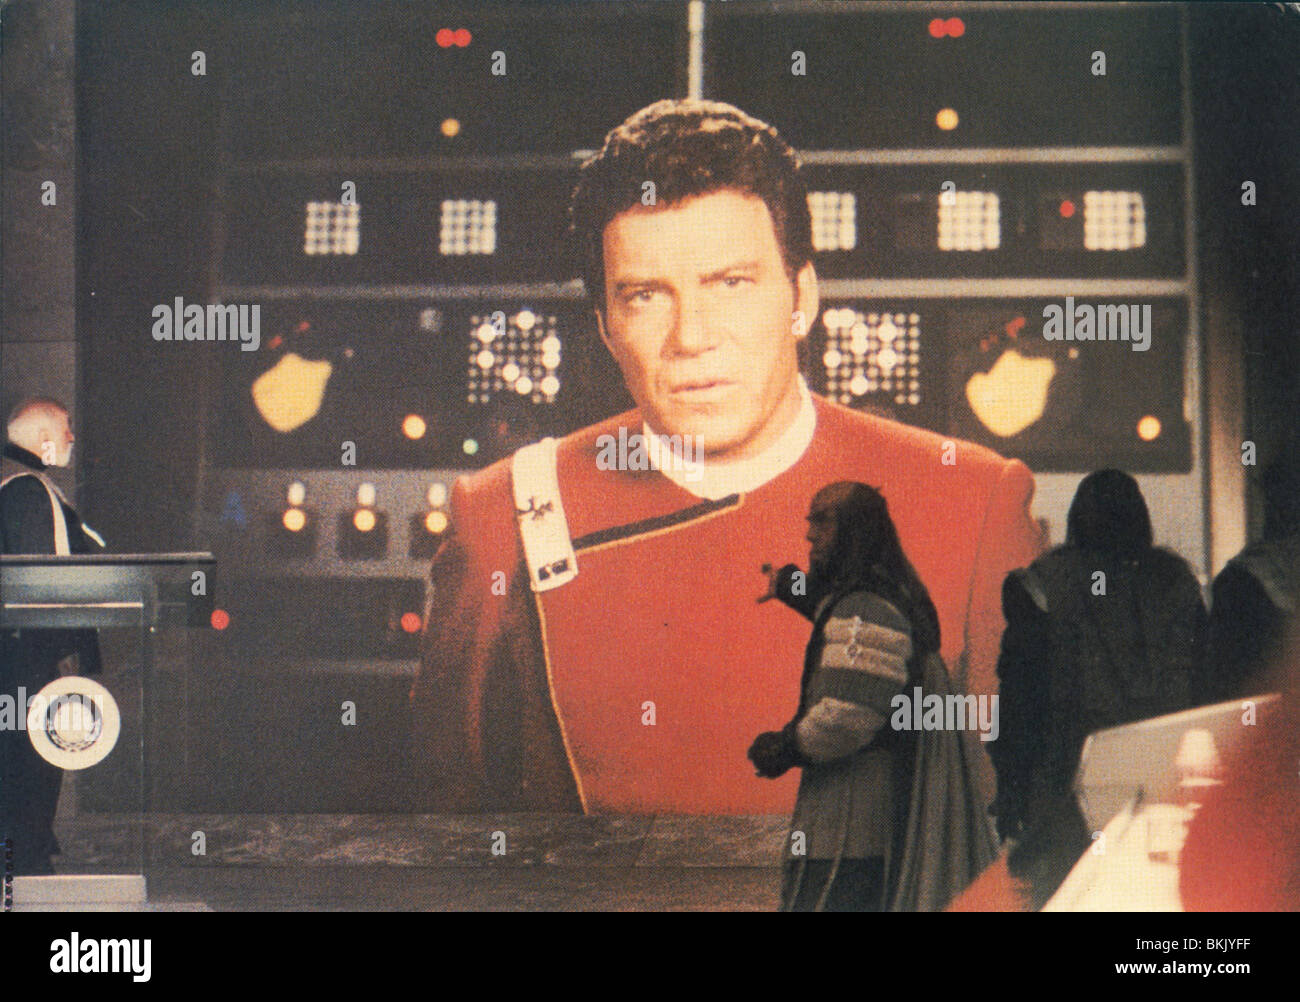 STAR TREK IV: THE VOYAGE HOME (1986) WILLIAM SHATNER, JOHN SCHUCK ST4 001FOH Stock Photo